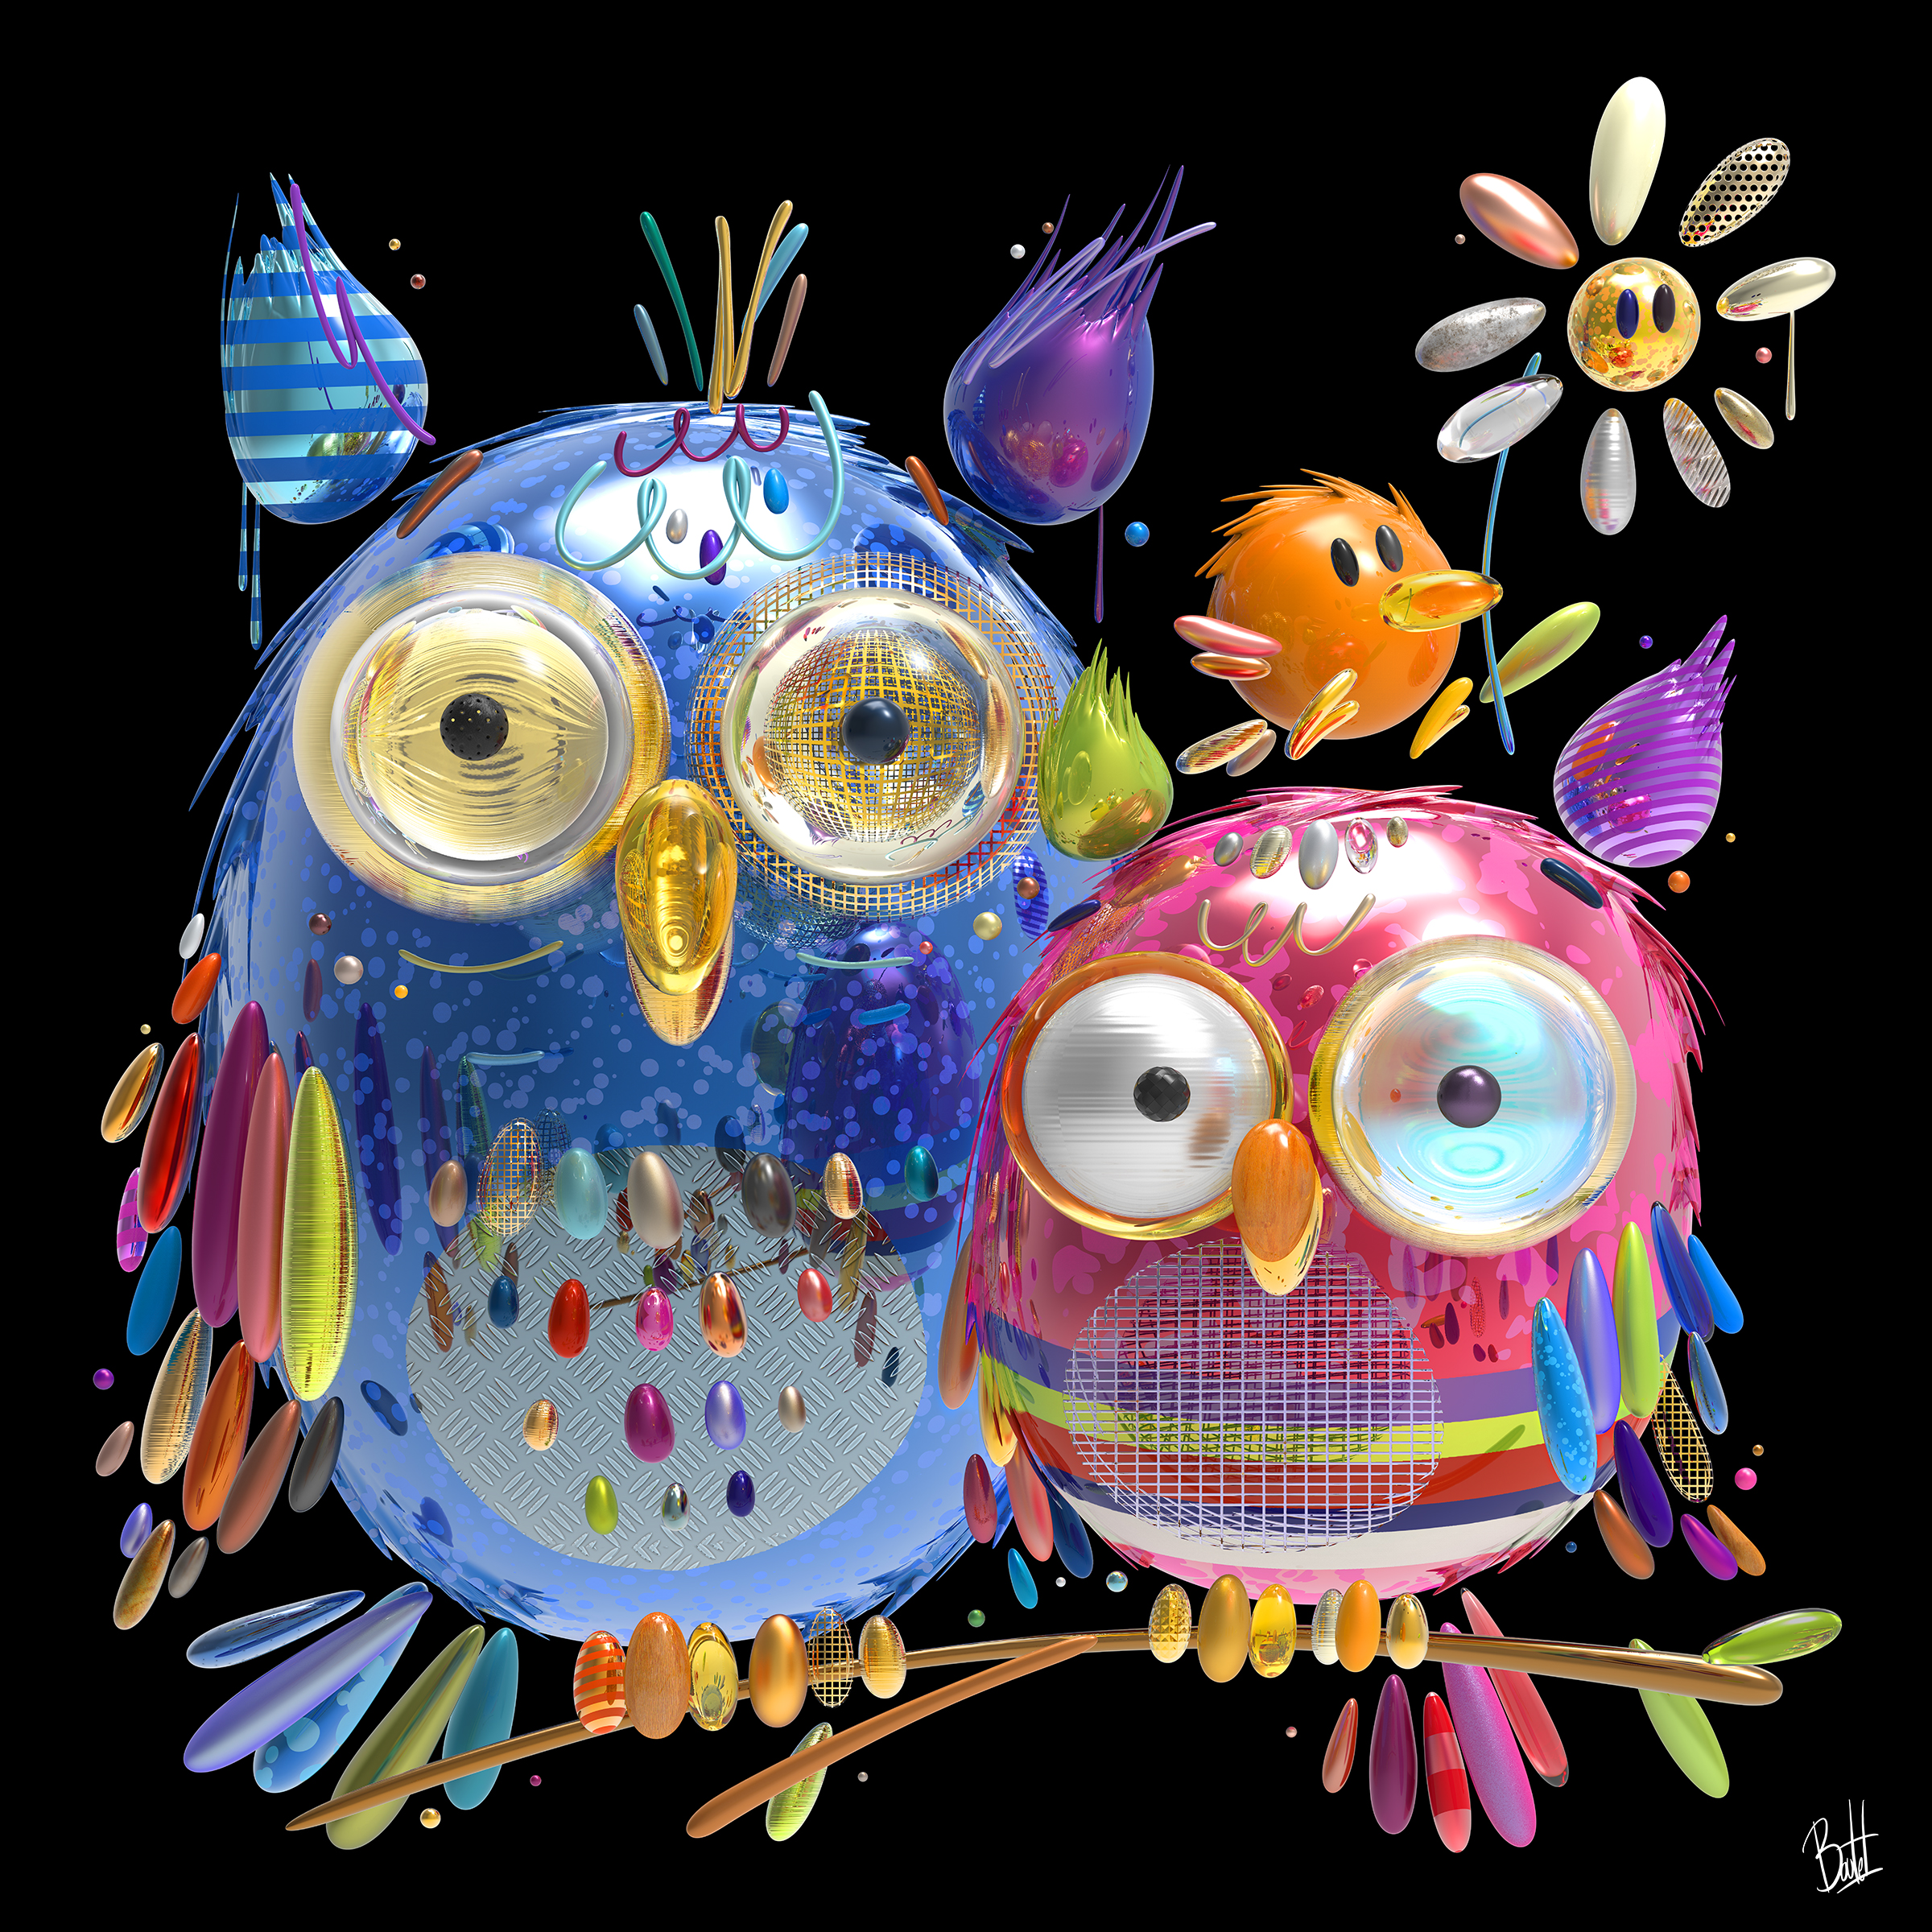 owl-i-want-is-u-48x48